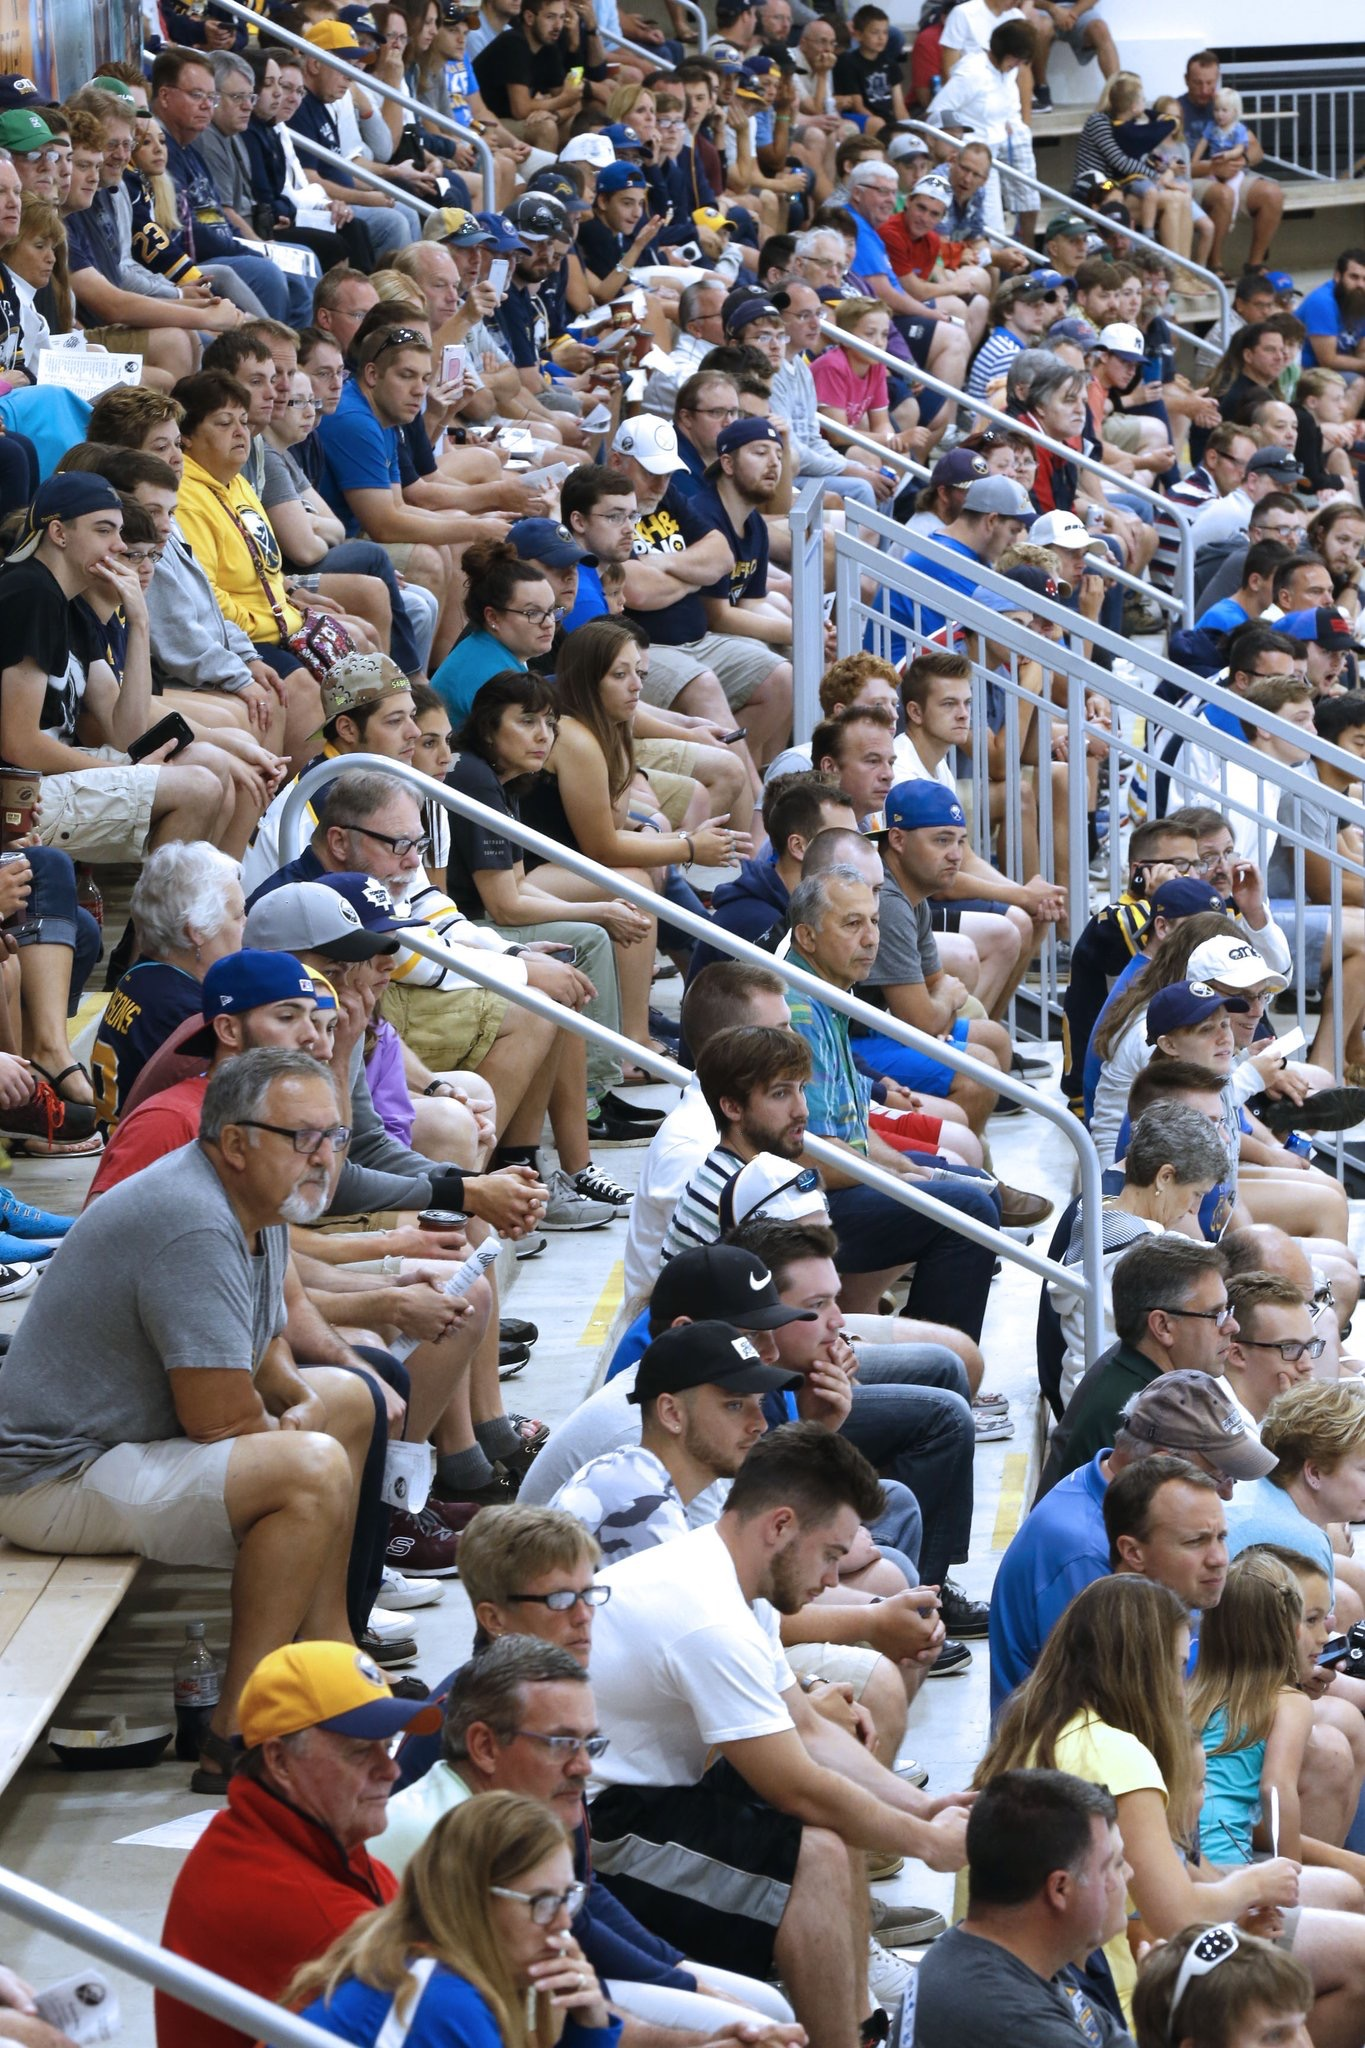 There was a healthy crowd at HarborCenter for the Sabres development camp scrimmage. (Robert Kirkham/Buffalo News)